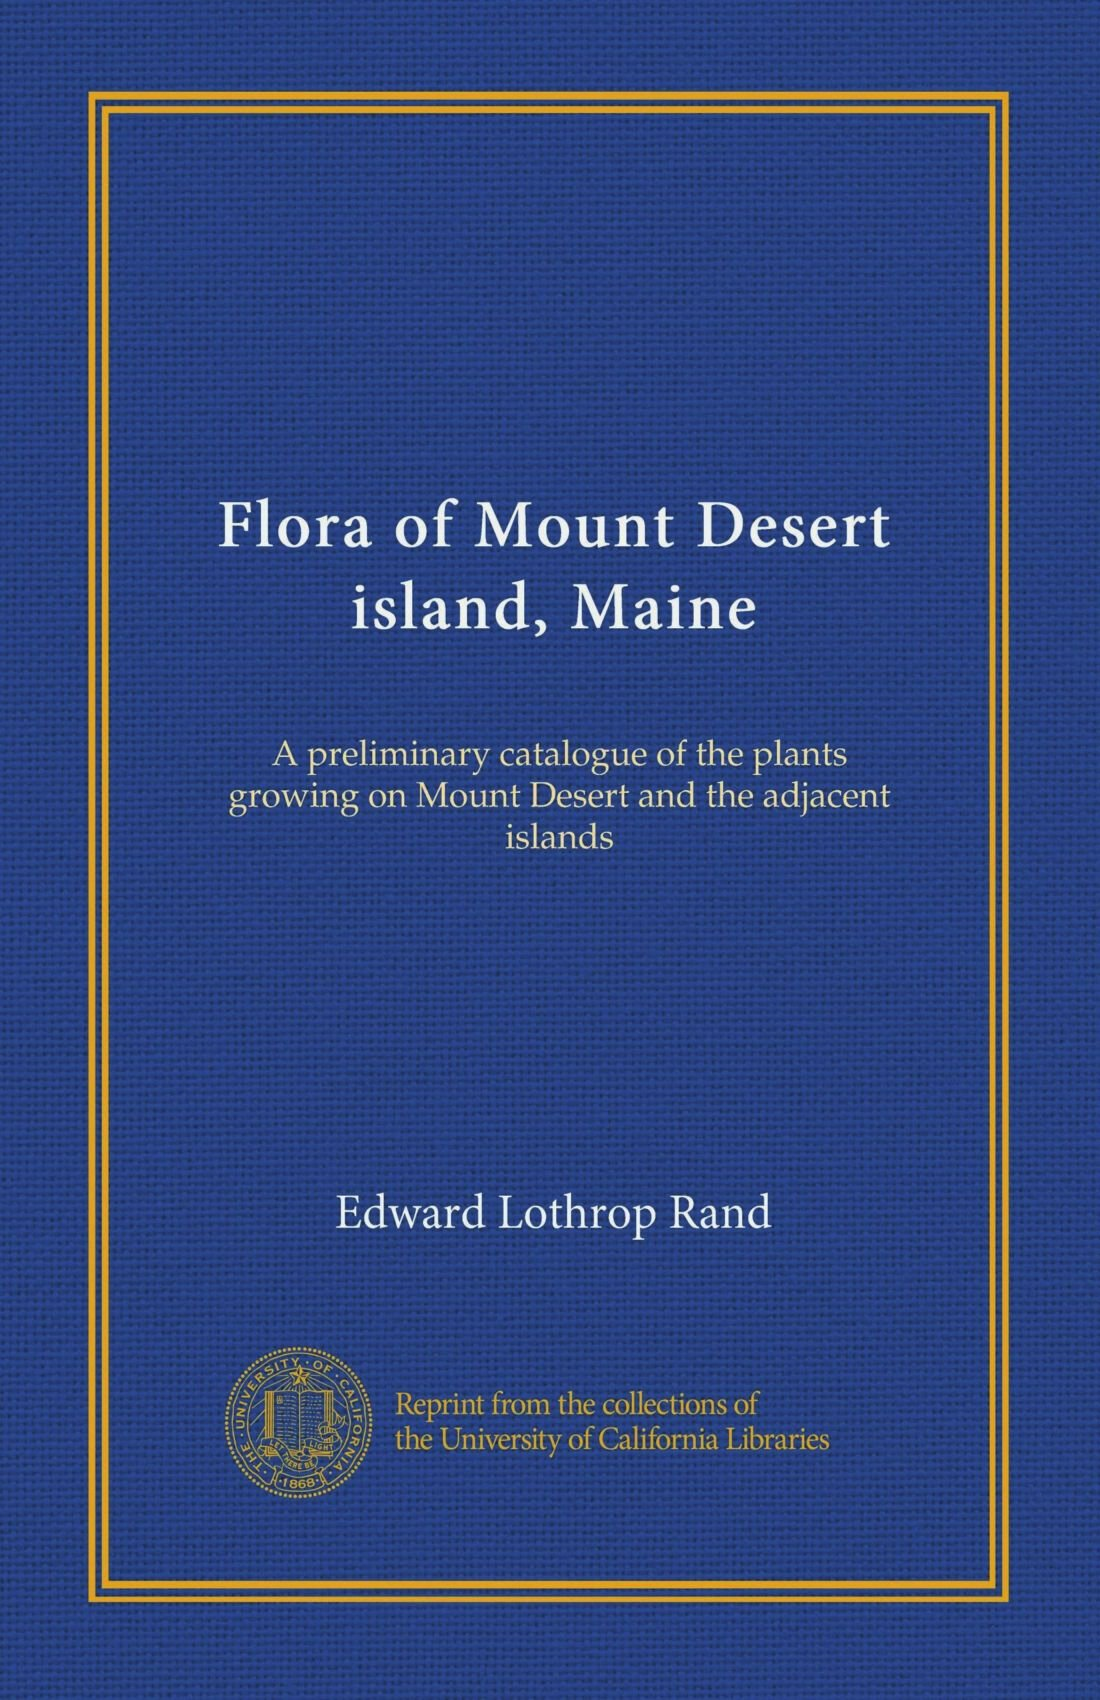 Flora of Mount Desert island, Maine: A preliminary catalogue of the plants growing on Mount Desert and the adjacent islands PDF